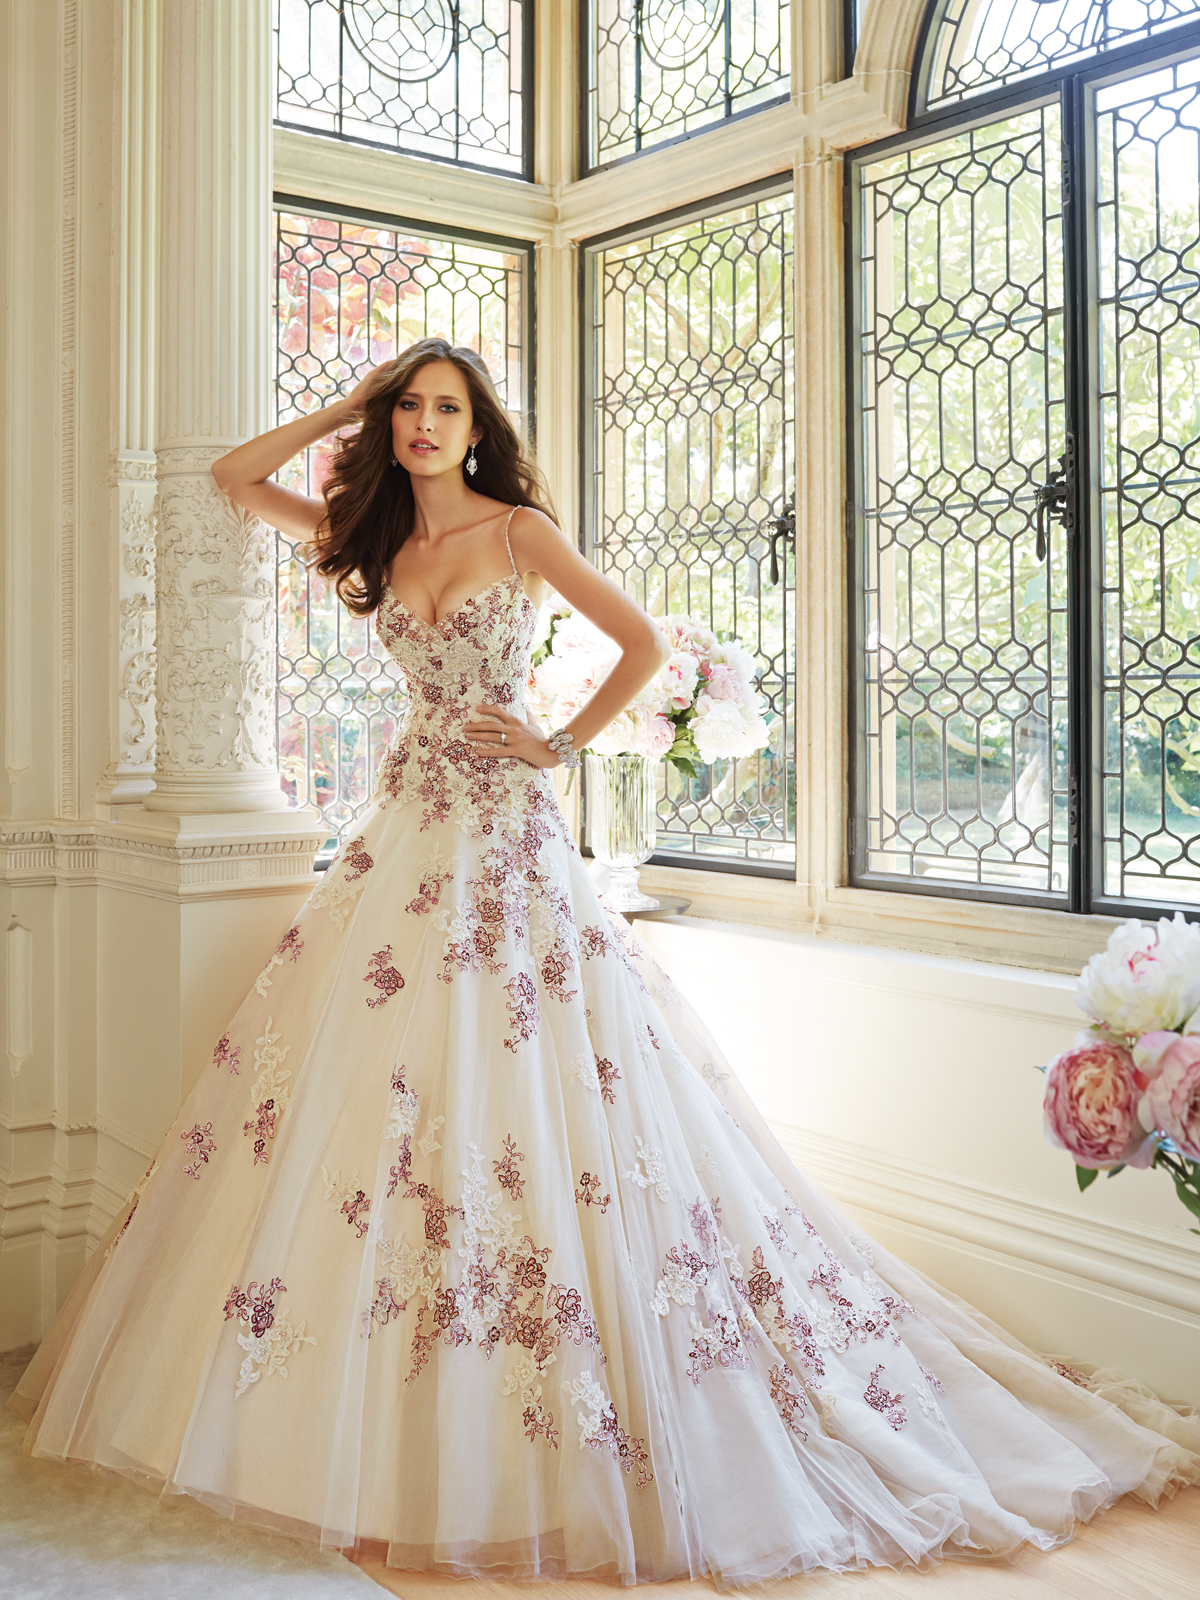 Sophia tolli wedding dresses 2014 collection modwedding sophia tolli wedding dresses 13 06212014nz ombrellifo Image collections